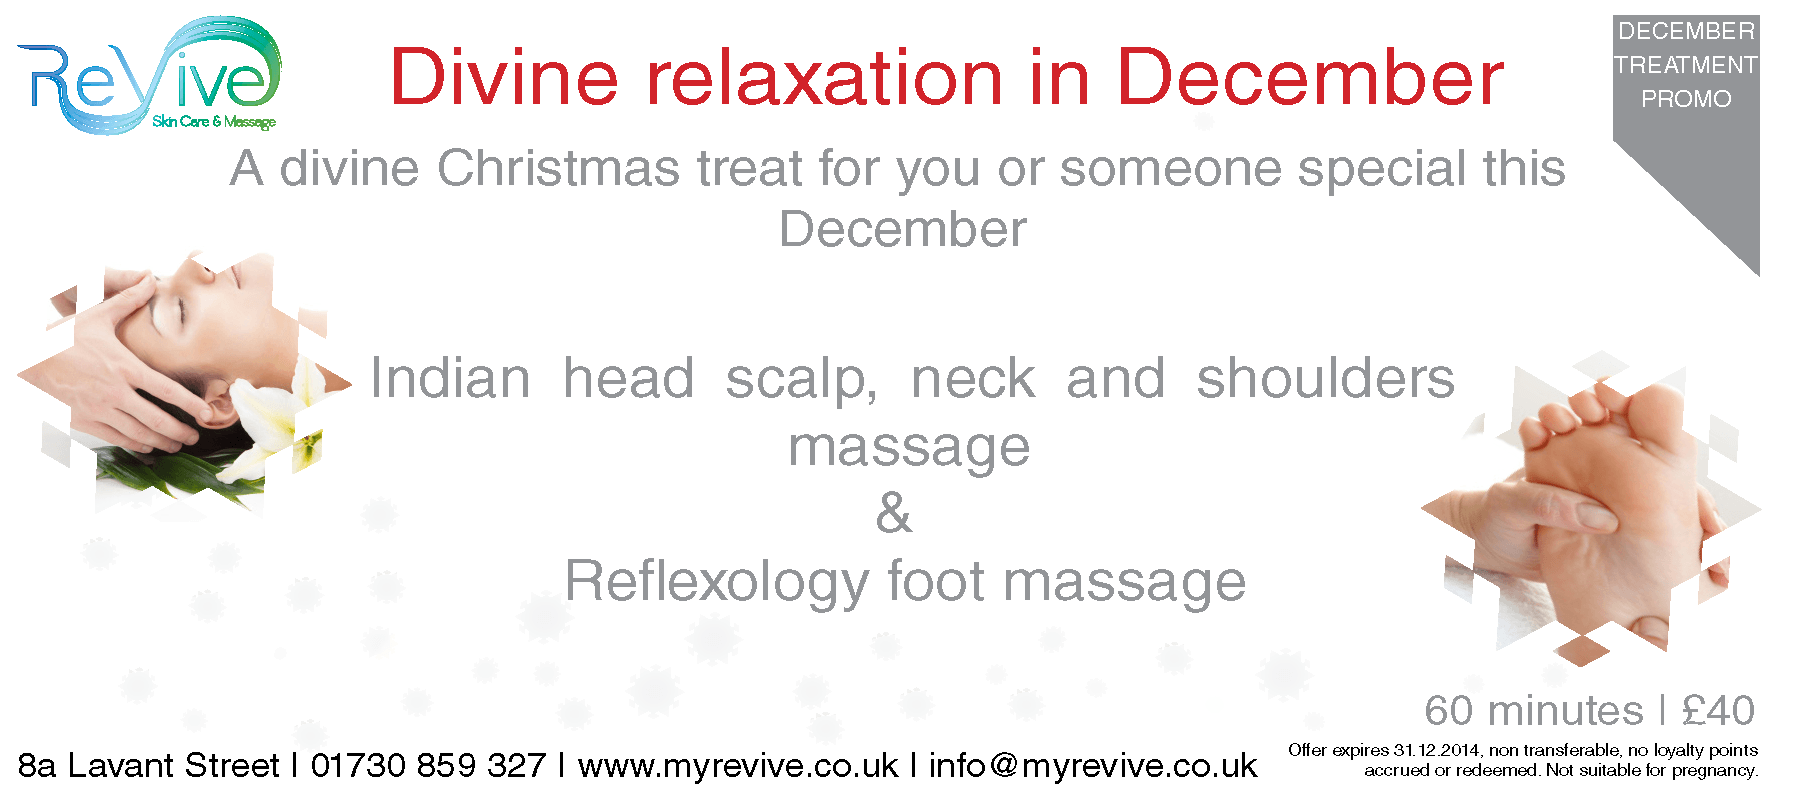 Treatment promotion December 2014